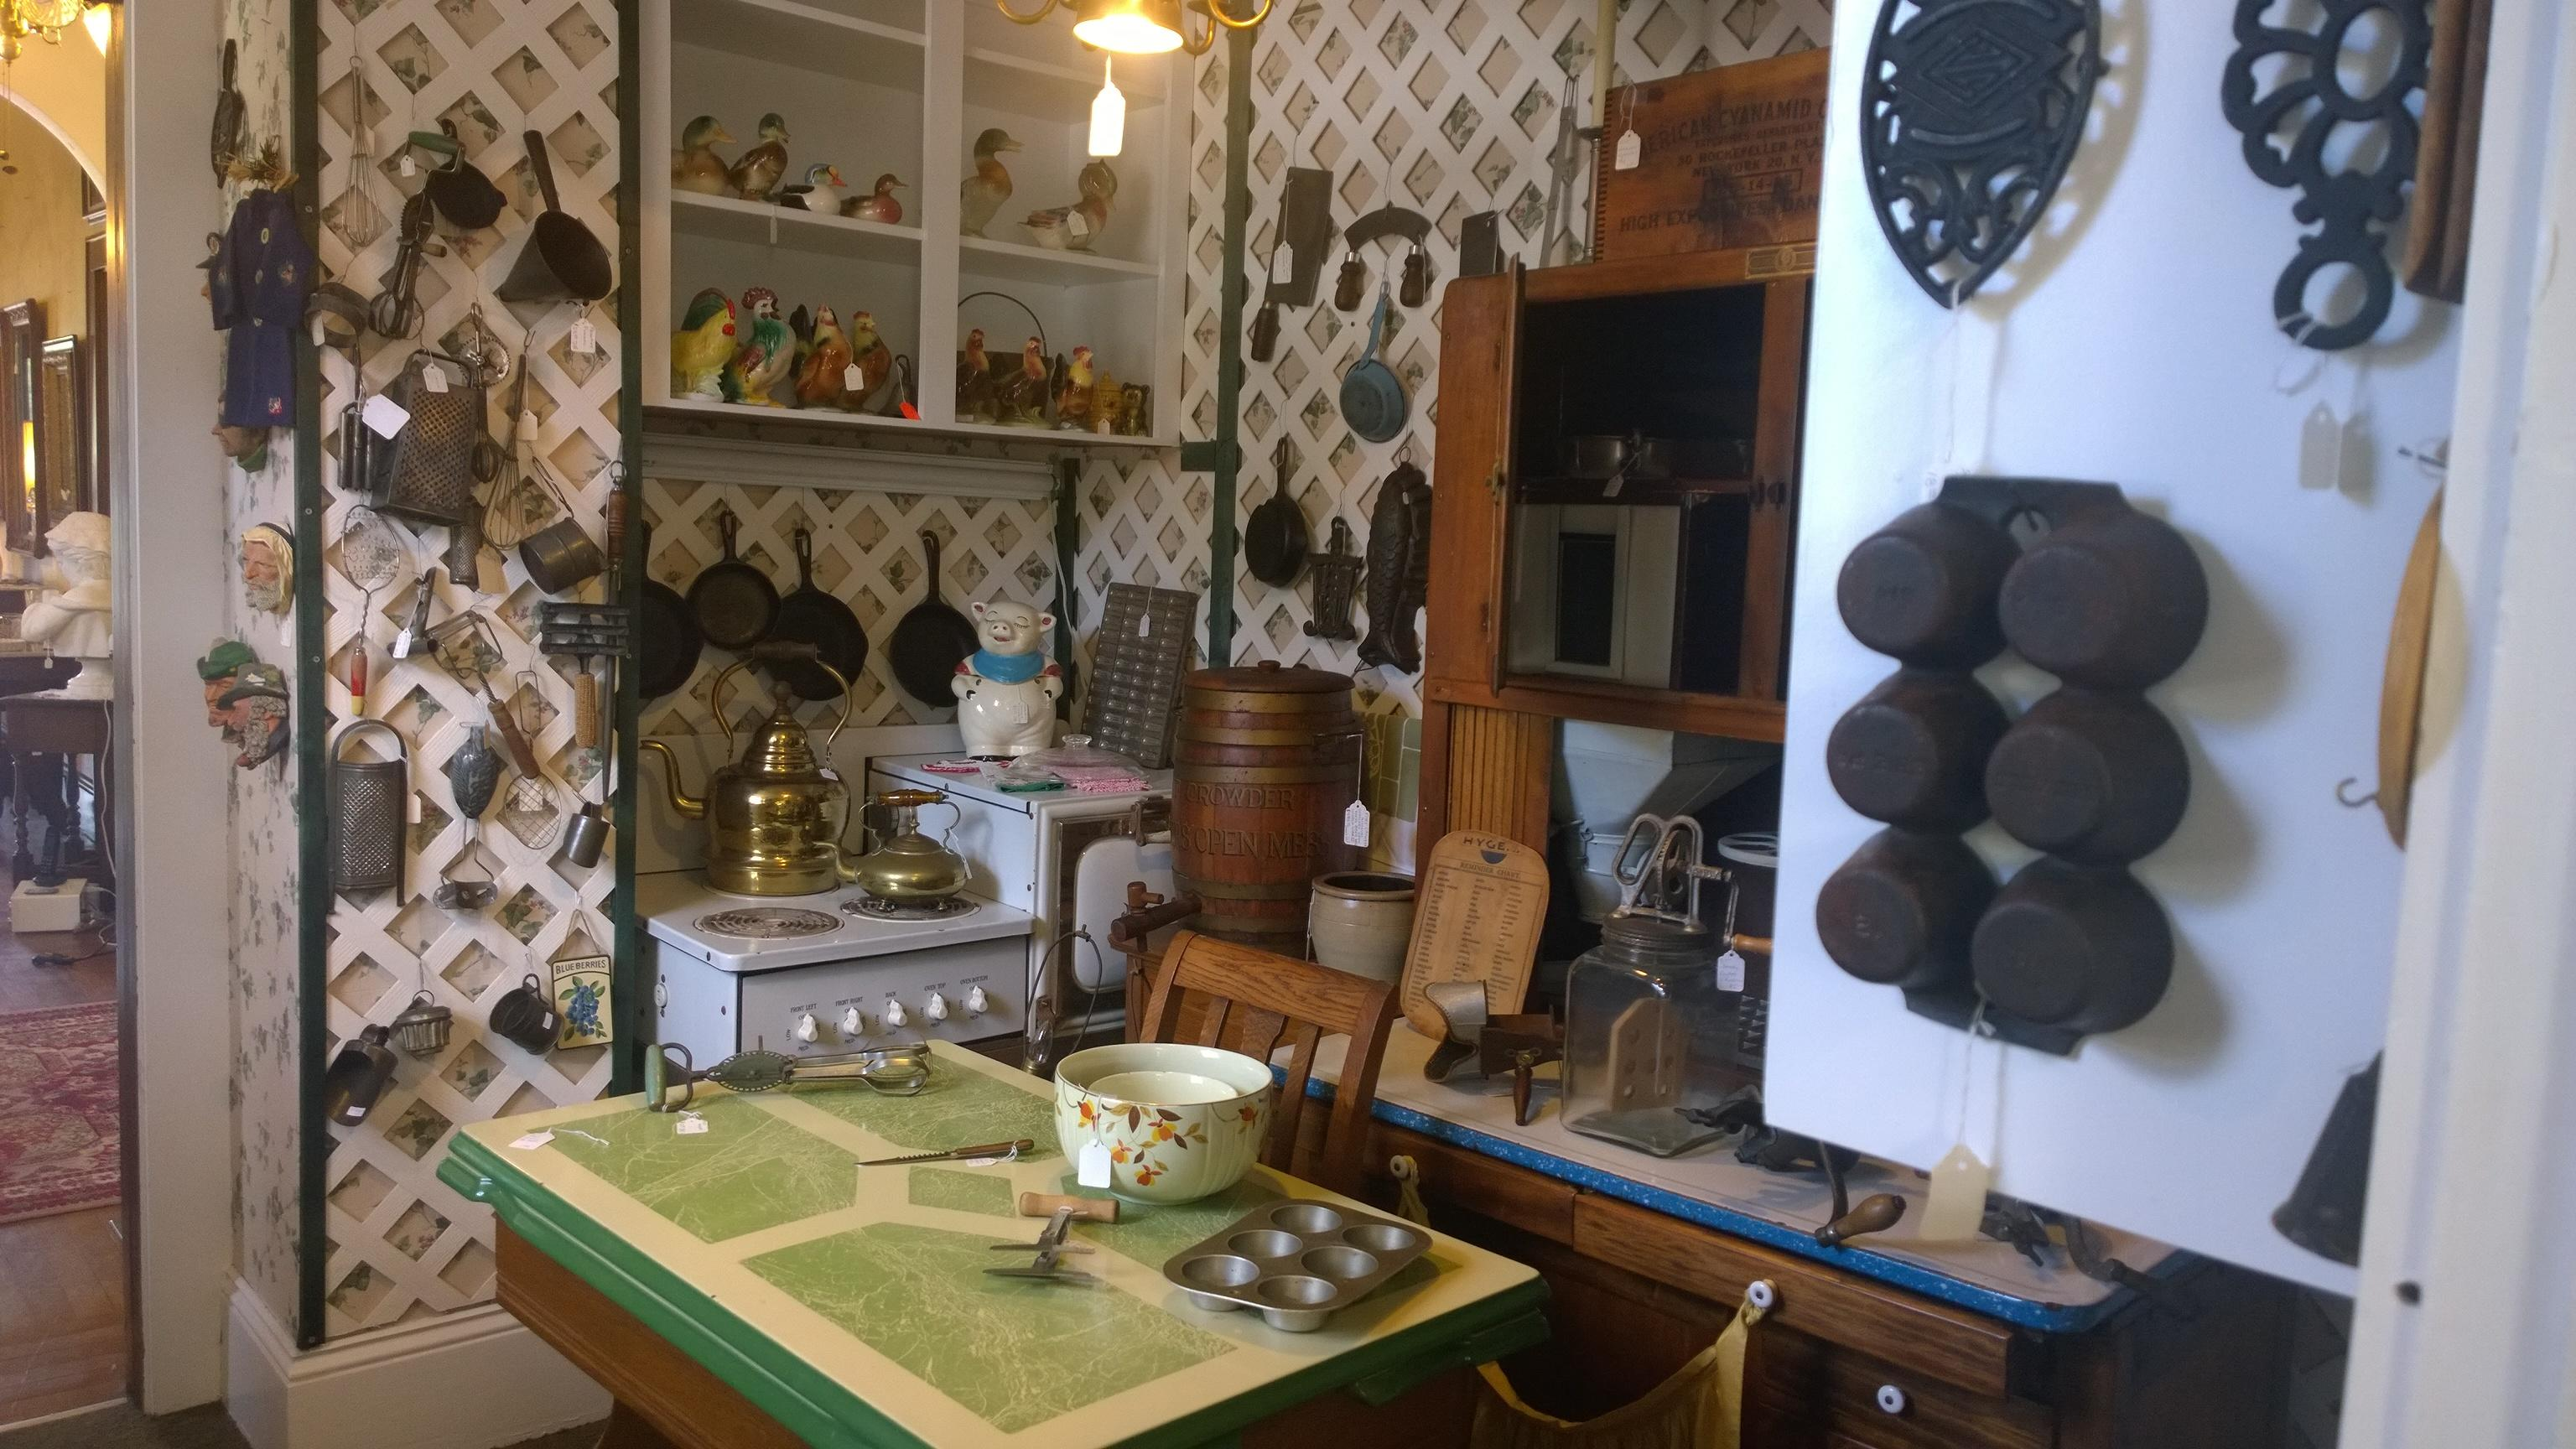 Magnolia House Antique Village In Daytona Beach Fl 32117